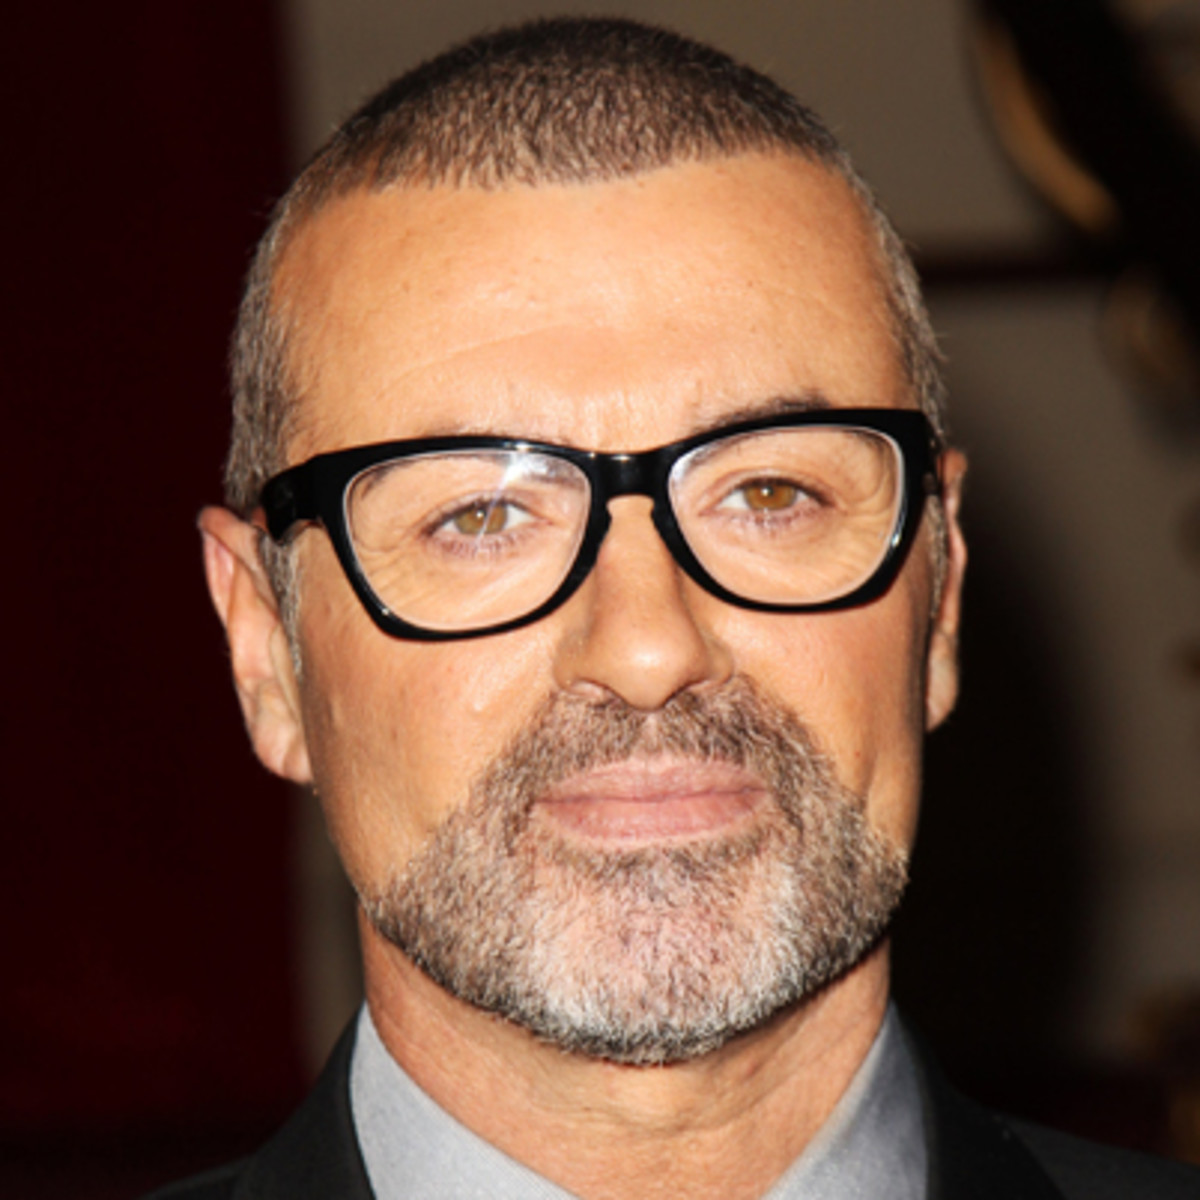 George michael songwriter singer biography nvjuhfo Gallery